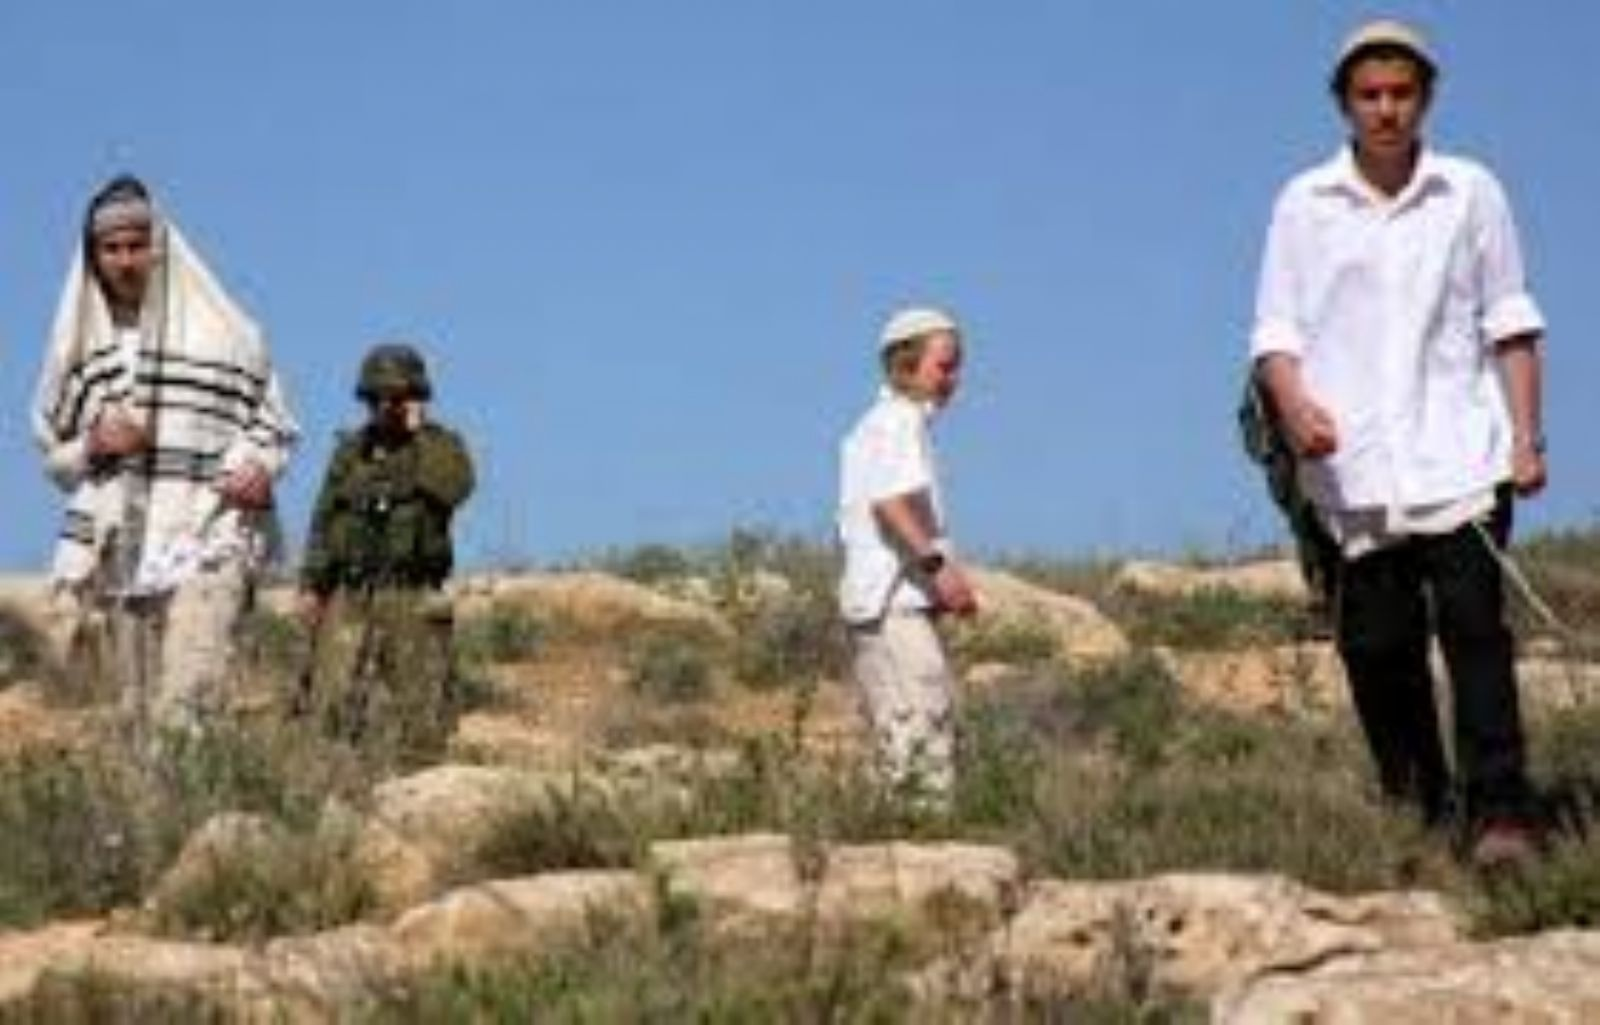 Israeli settlers attempt to abduct Palestinian boys in West Bank